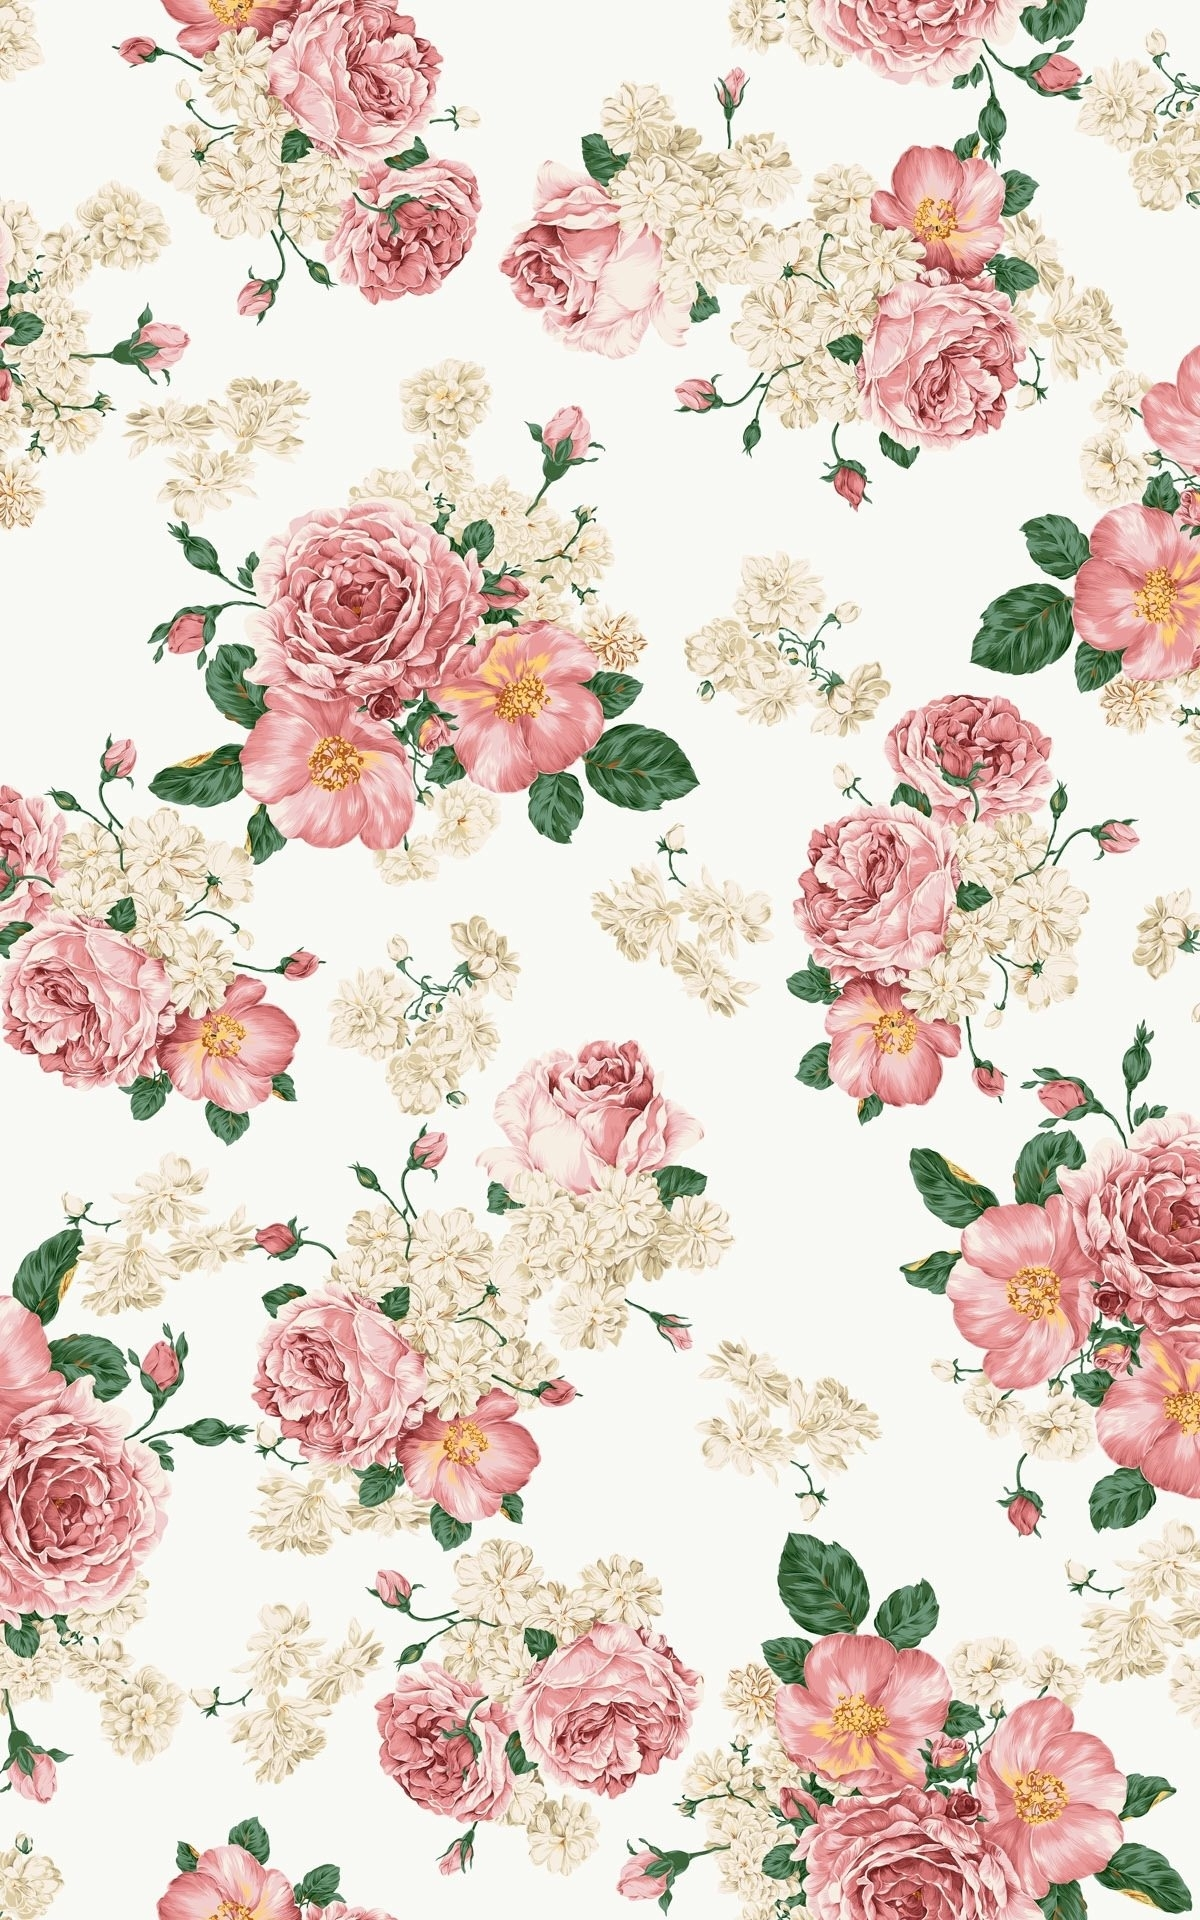 Title : pink flower android wallpaper hd pics widescreen high res vintage. Dimension : 1200 x 1920. File Type : JPG/JPEG